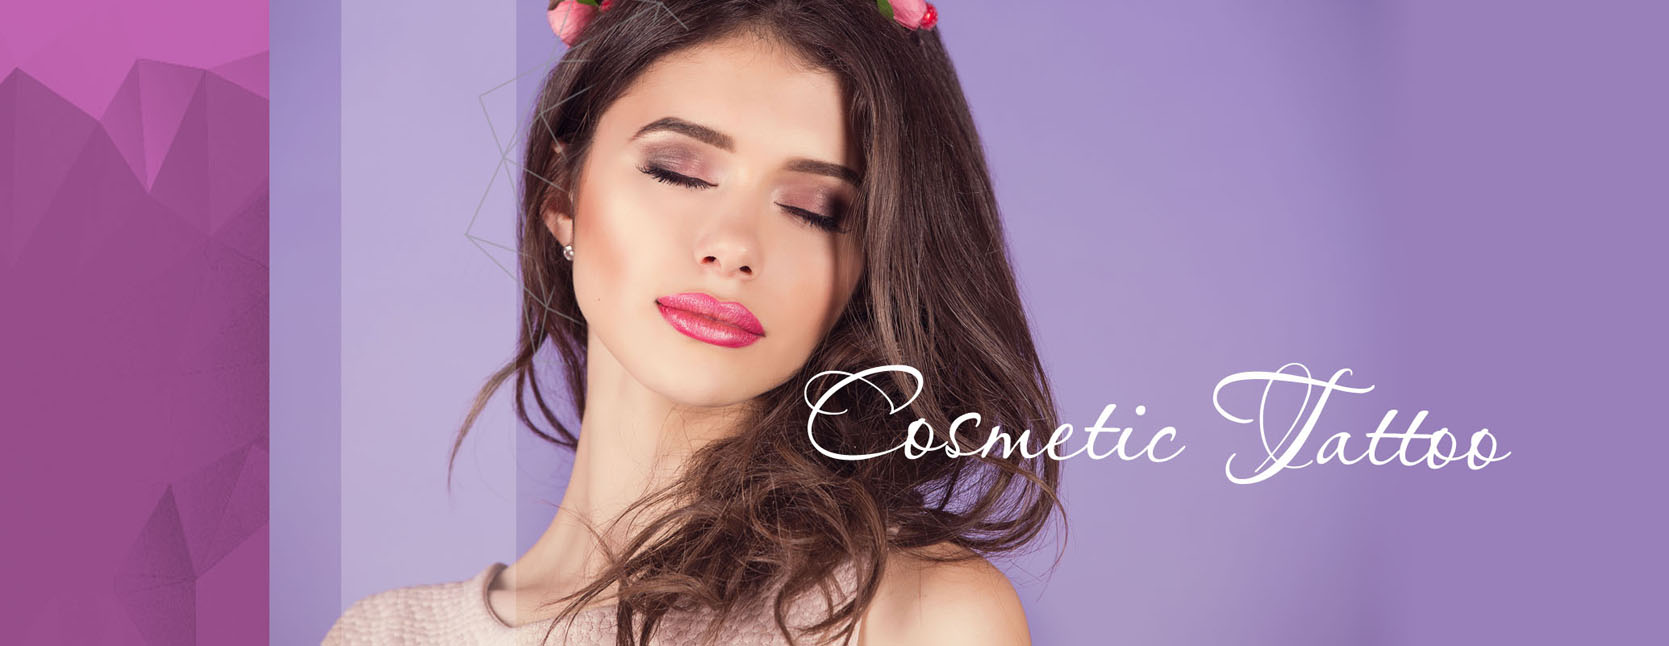 Eyebrow feathering Ink Cosmetica - Cosmetic Tattoo Melbourne.